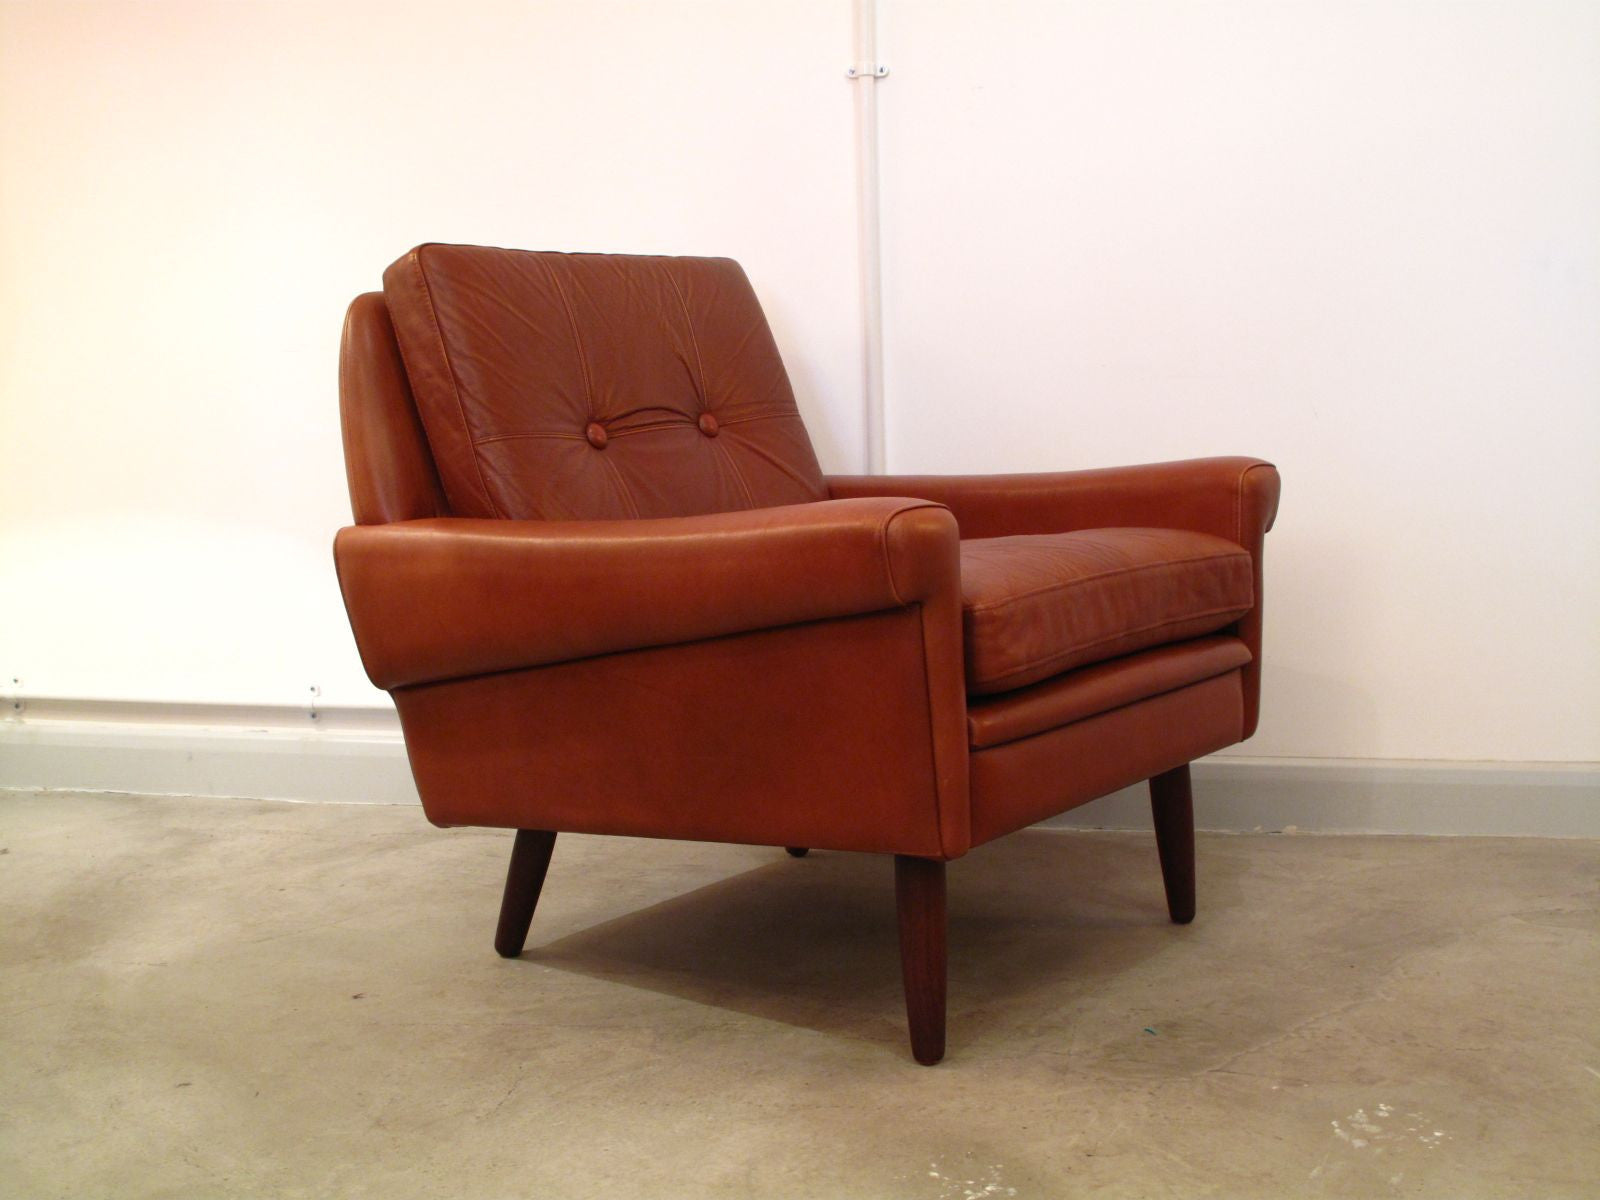 Chase & Sorensen Lowback caramel-colored lounge chair